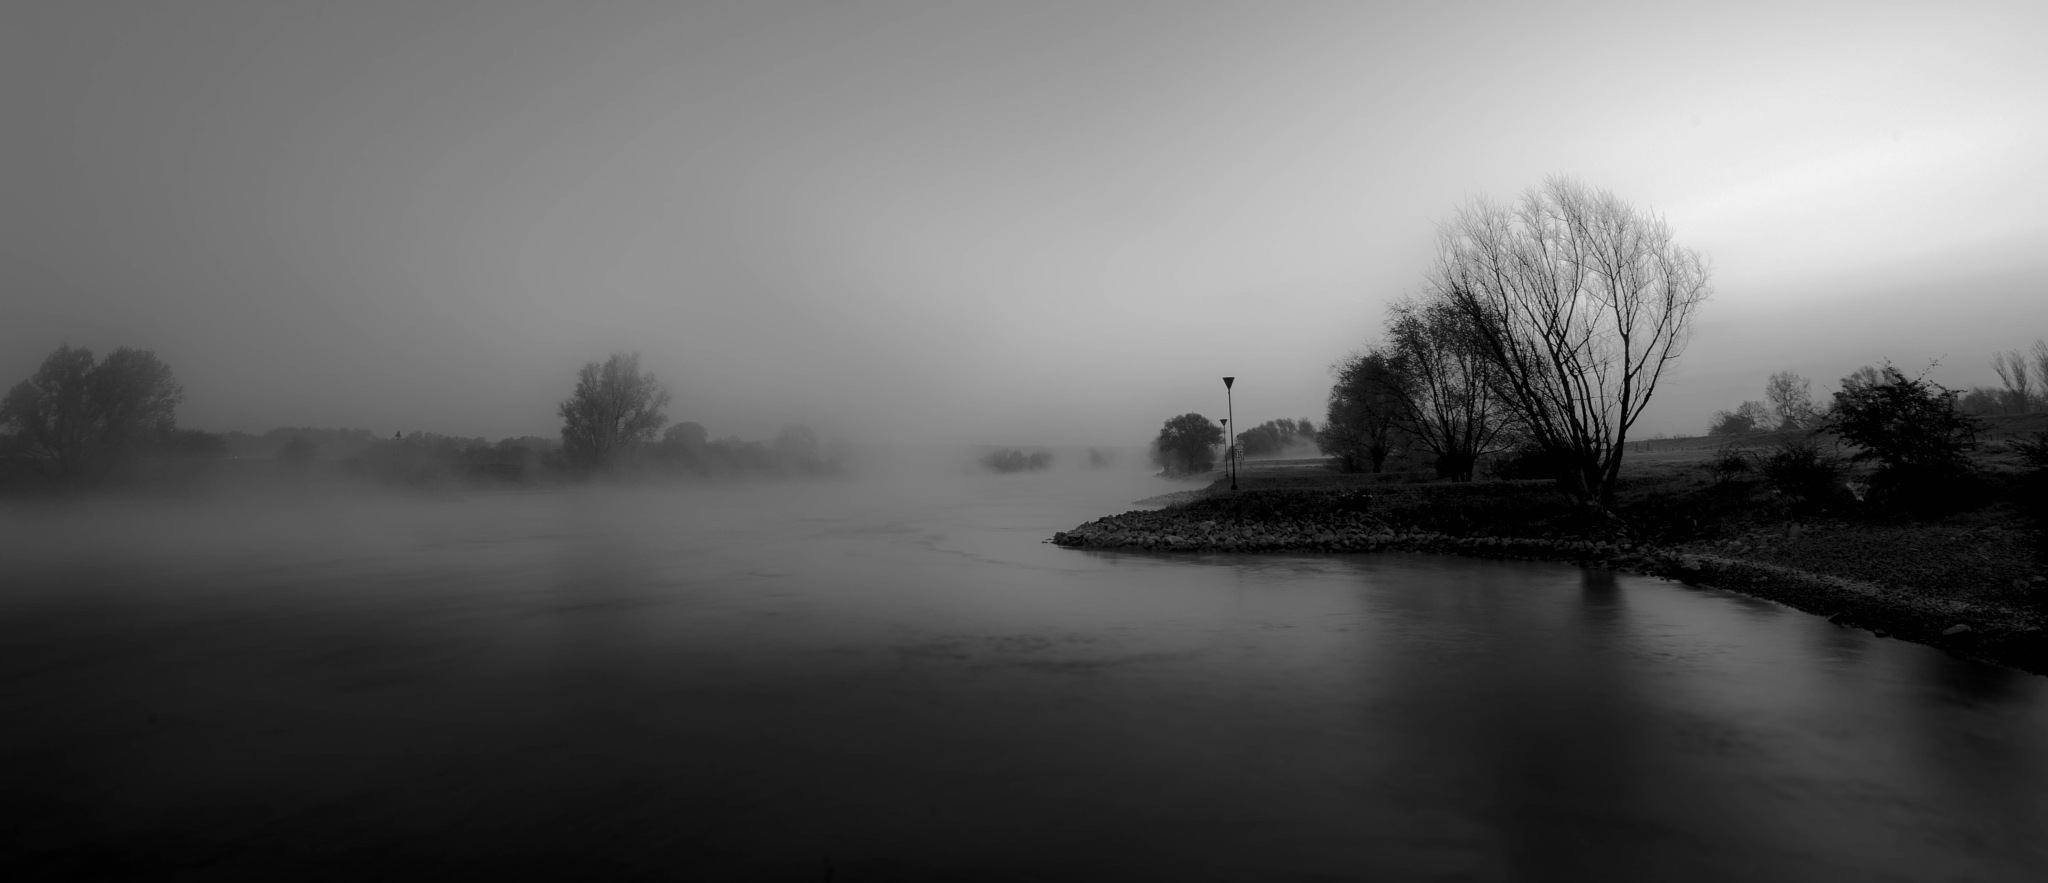 Holland: misty morning by Roy Maas